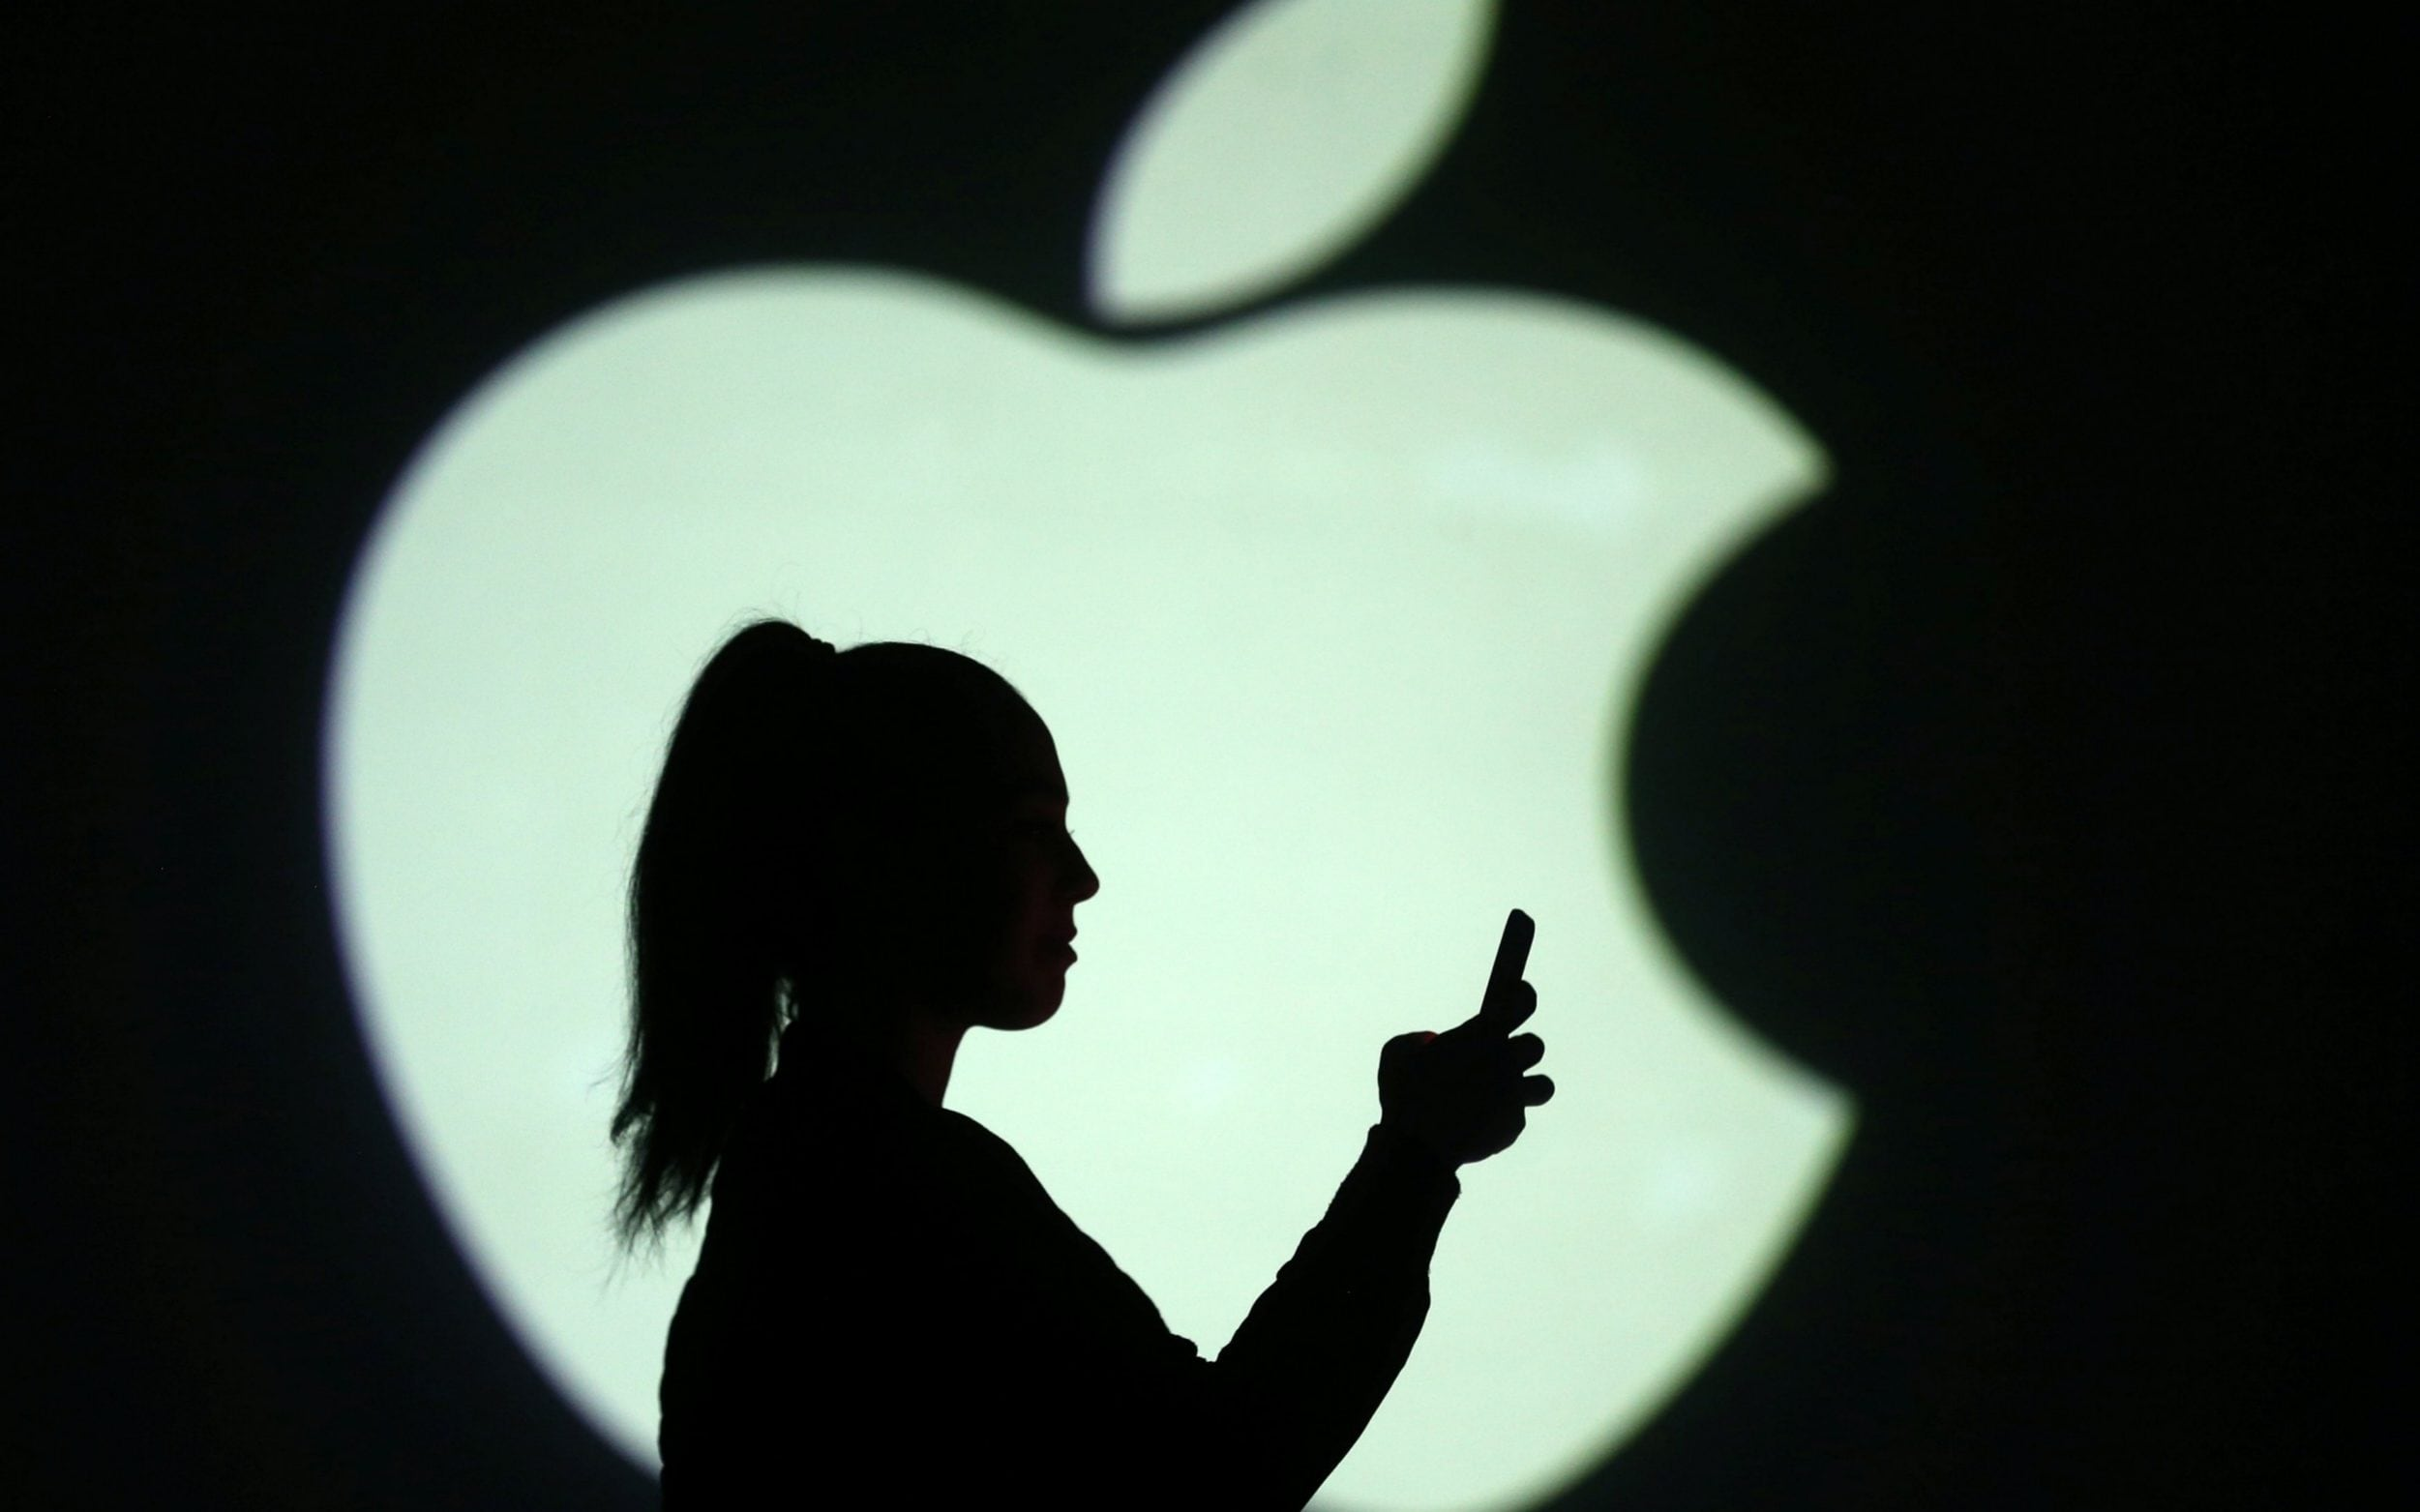 Apple software update adds new privacy tools to protect users  data The software update will be across the iPhone as well as iPads  Macs and  Apple TV Credit  Reuters